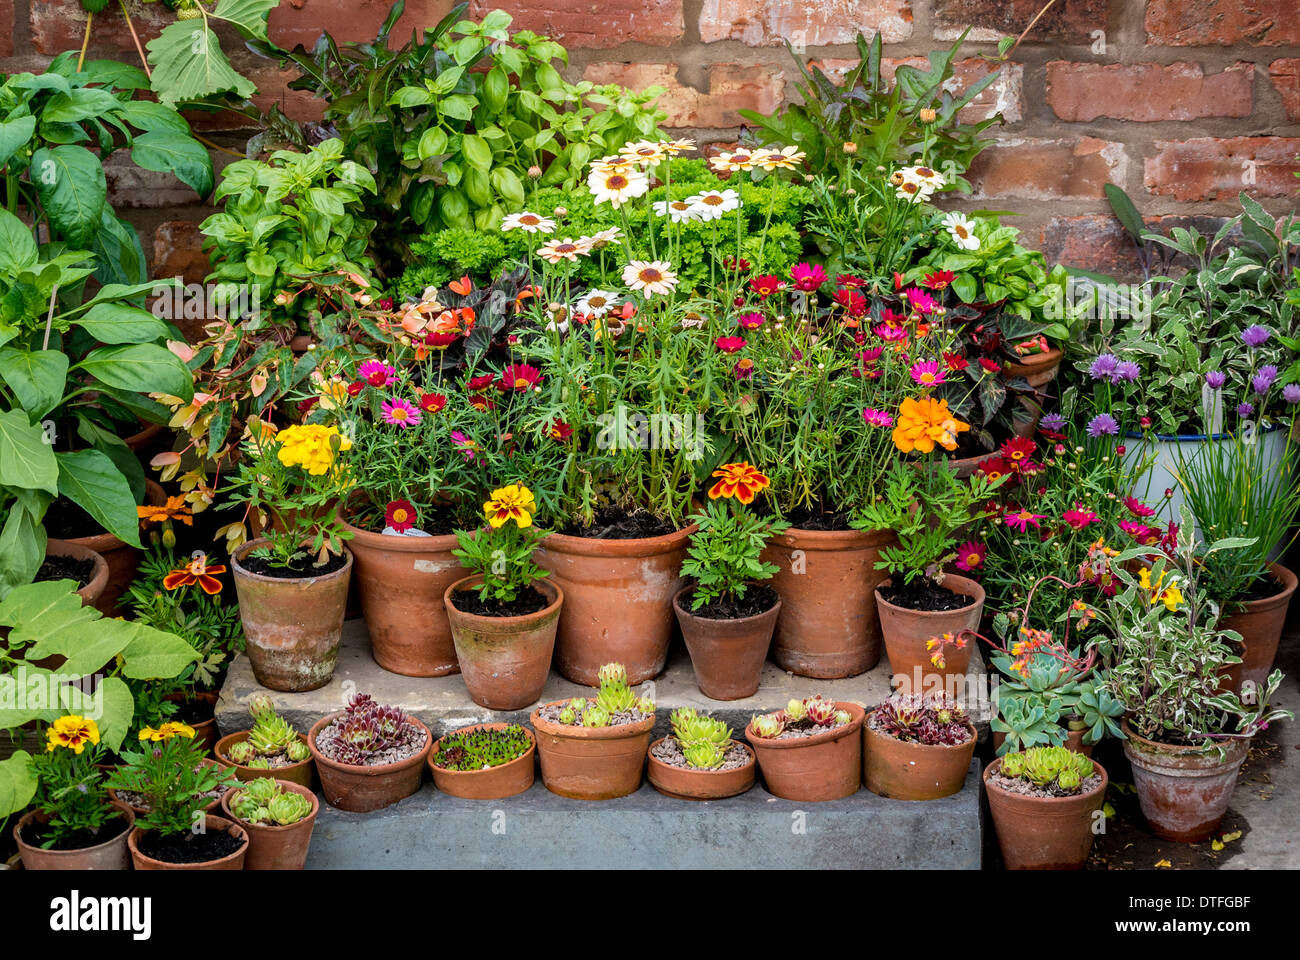 Herbs and flowers growing in pots in domestic garden - Stock Image